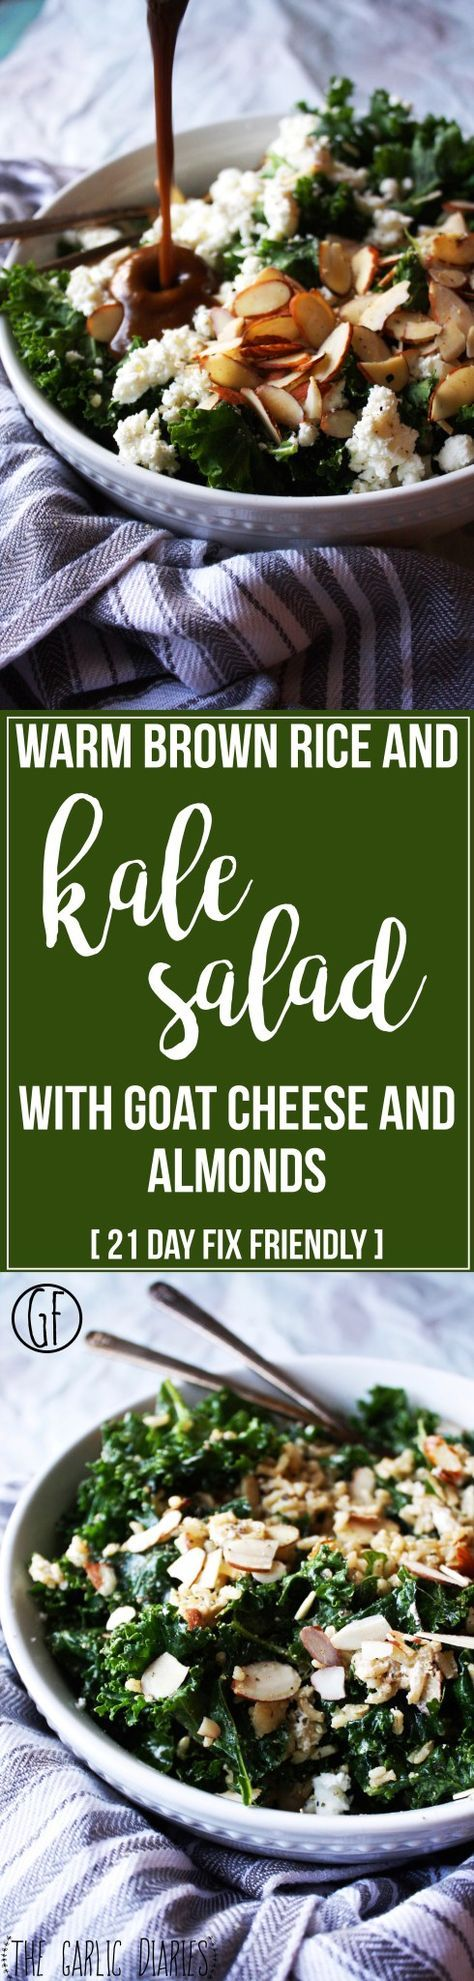 21 Day Fix Approved Warm Brown Rice and Kale Salad with Goat Cheese and Almonds // 21 Day Fix // 21 Day Fix Approved // fitness // fitspo  motivation // Meal Prep //  Meal Plan // Sample Meal Plan// diet // nutrition // Inspiration // fitfood // fitfam // clean eating // recipe // recipes // gluten free